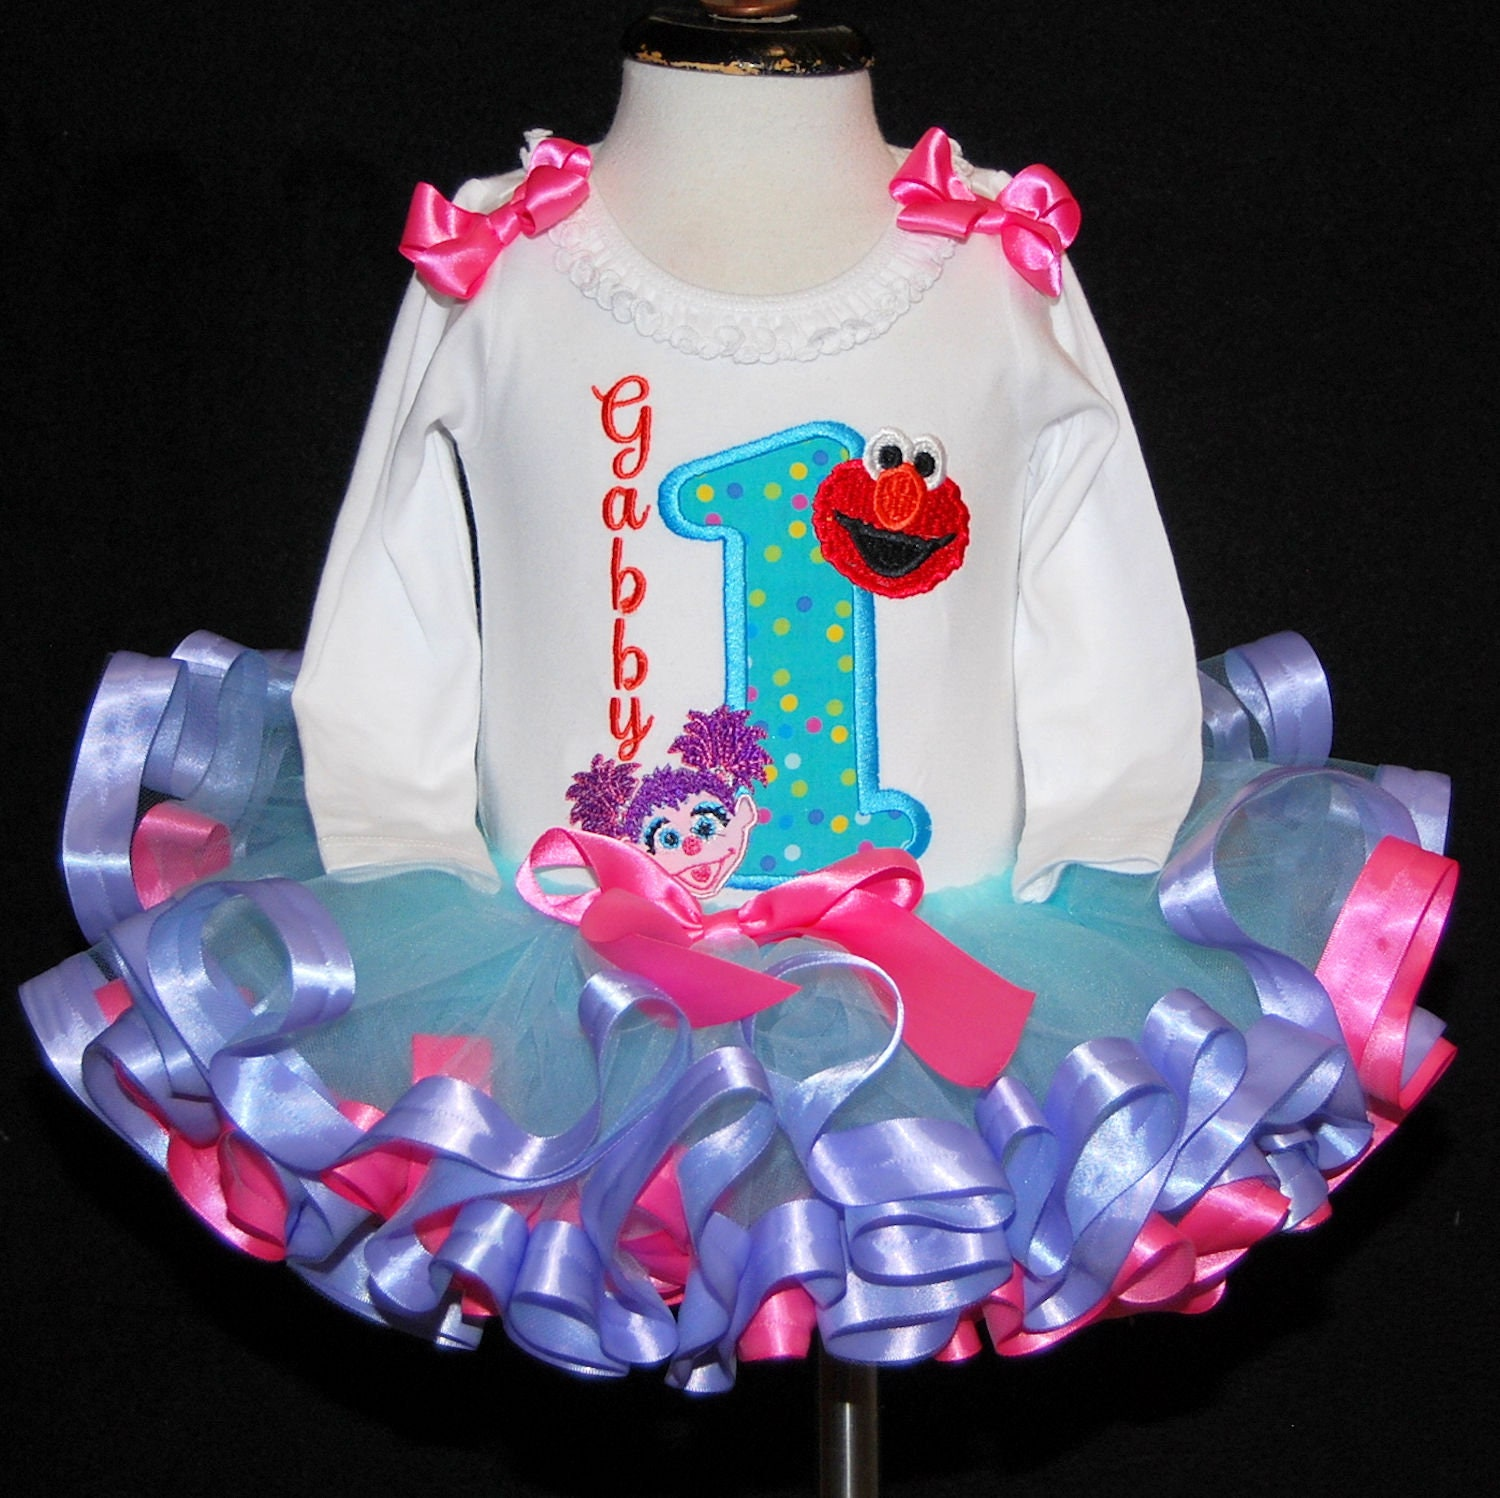 1st birthday girl outfit, Sesame Street birthday, Elmo and Abby1st Birthday Outfit, first birthday outfit girl, elmo birthday dress, Muppets